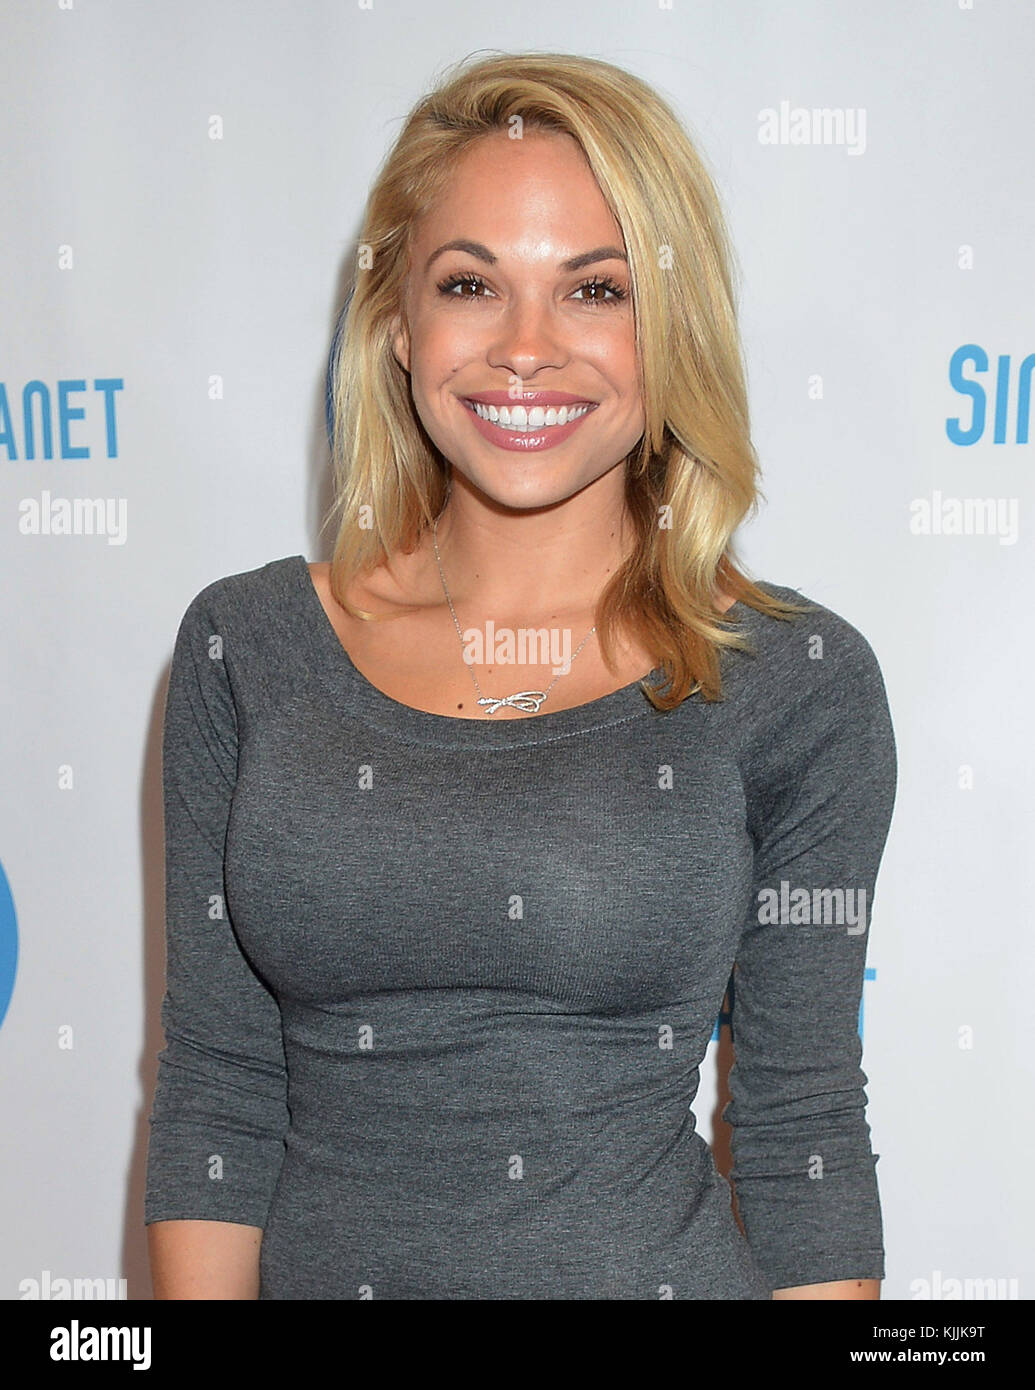 Photos Dani Mathers nude (45 foto and video), Tits, Cleavage, Feet, underwear 2015